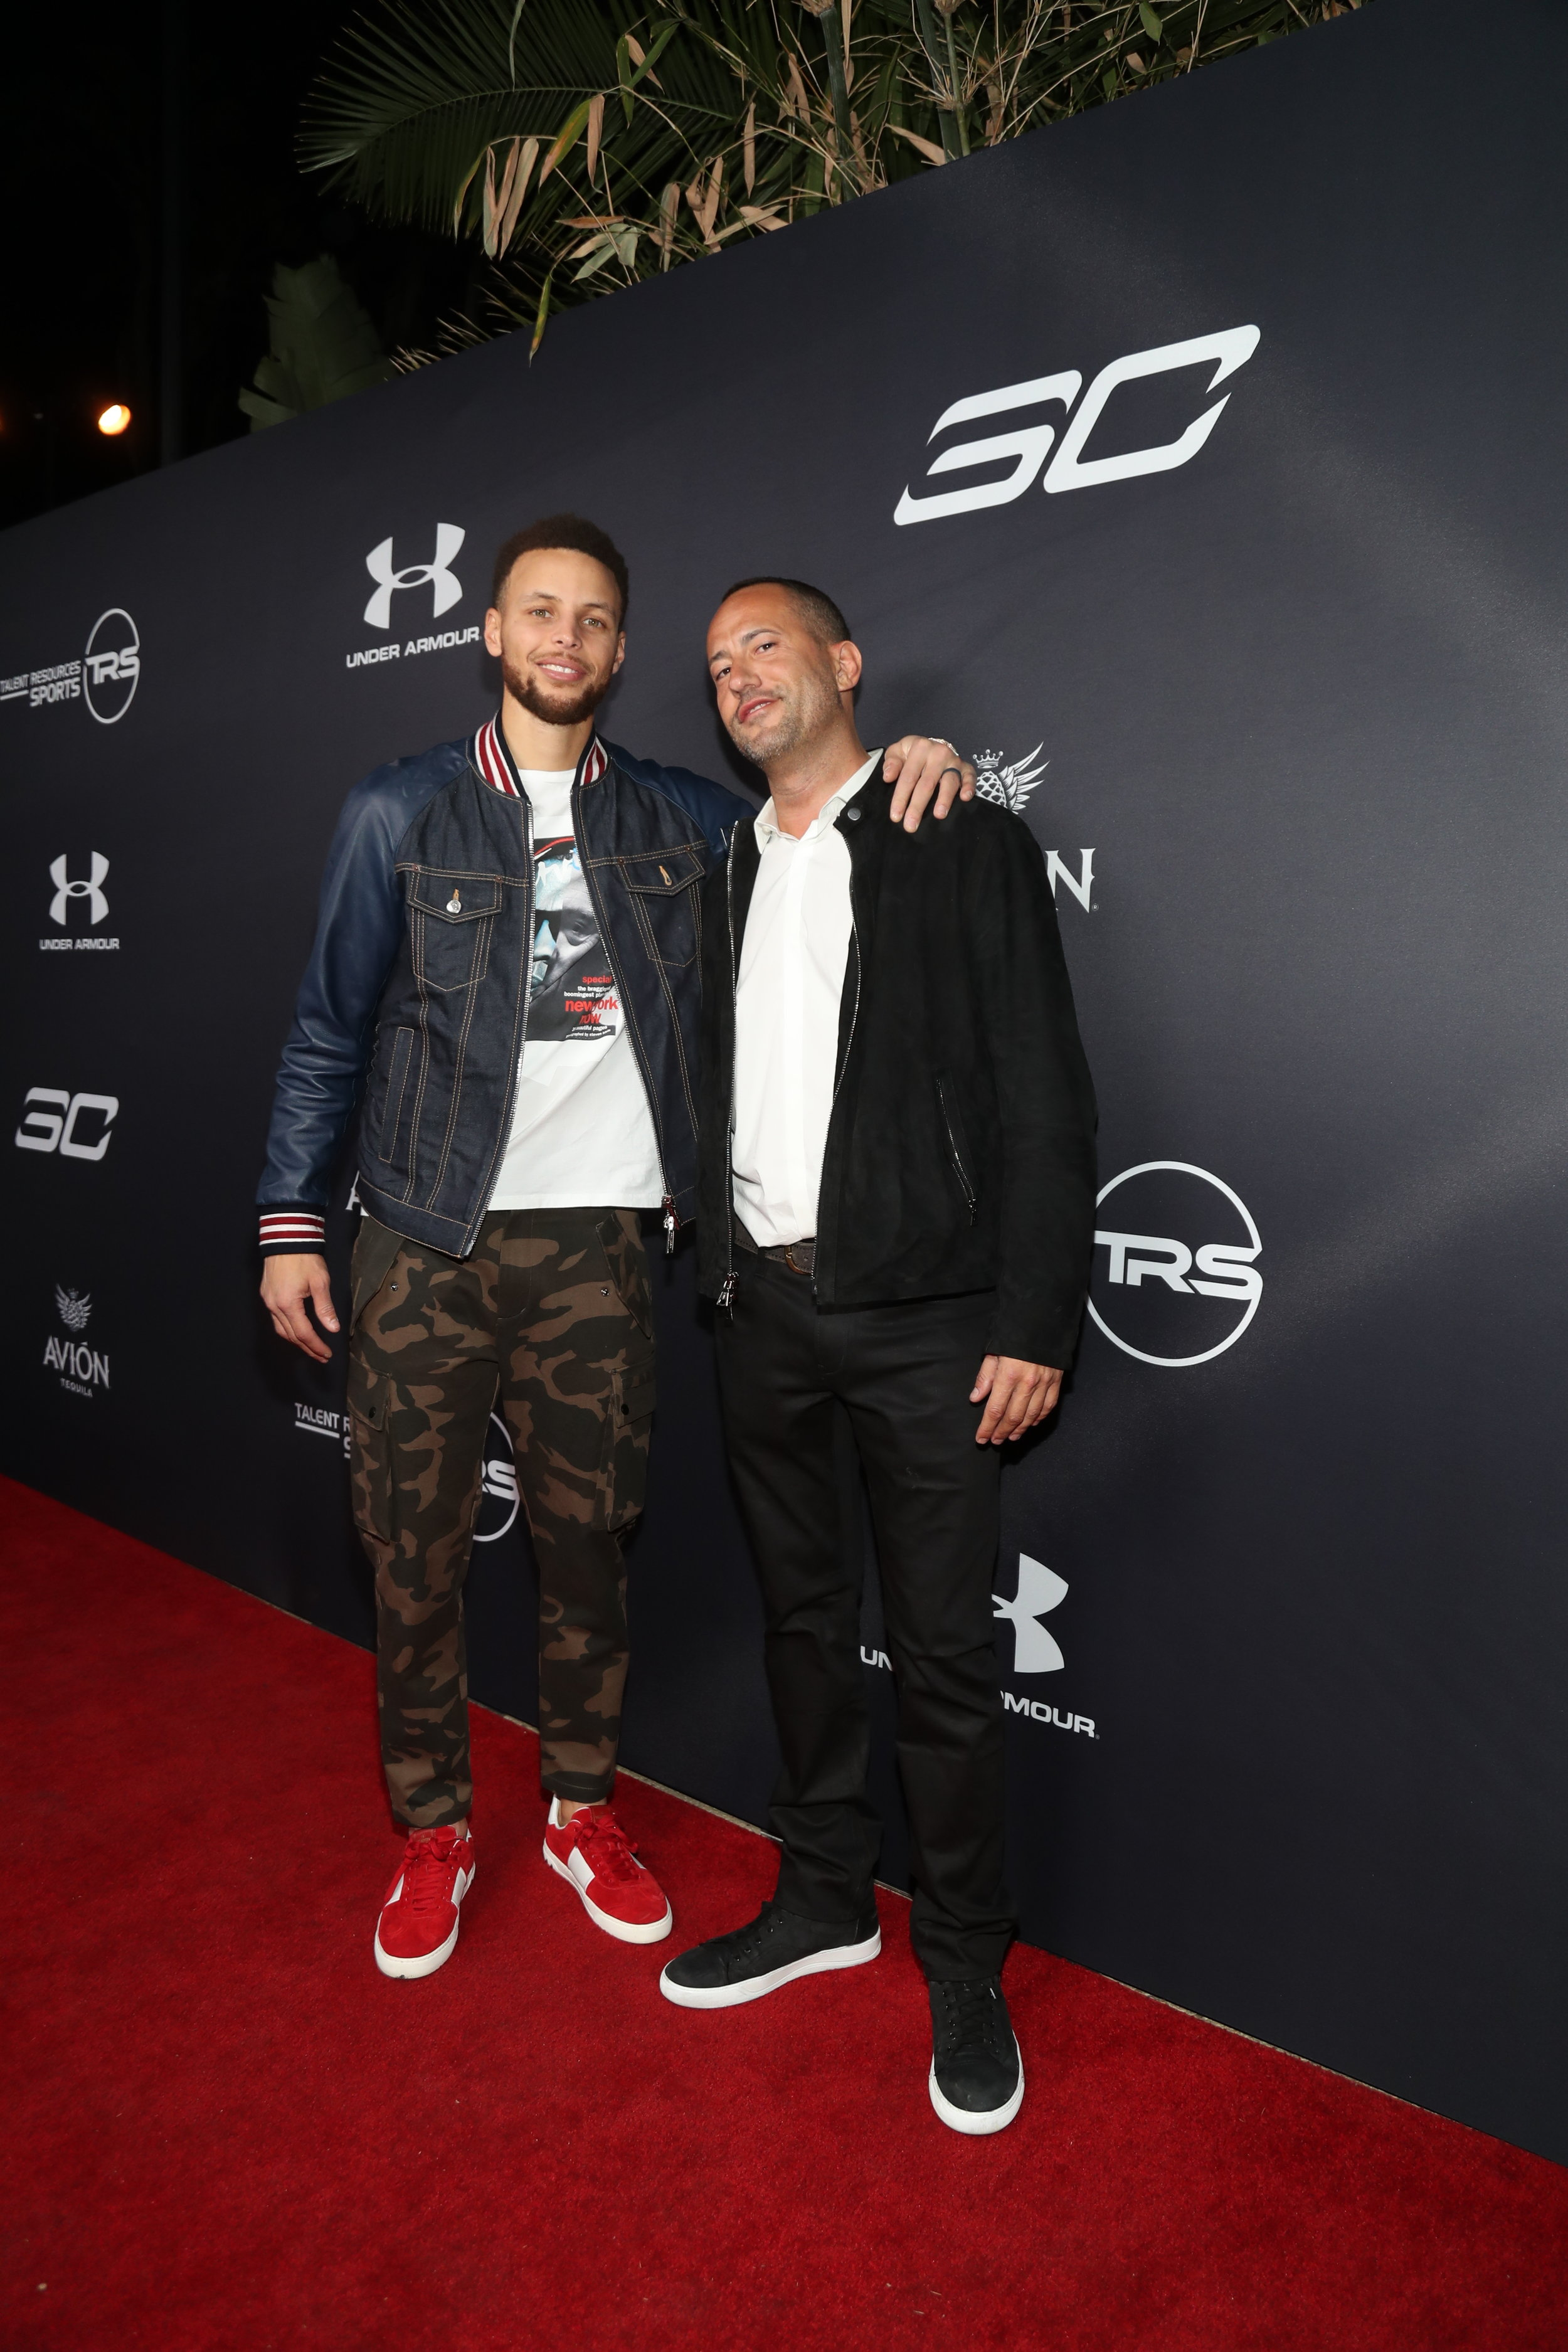 Stephen Curry & David Spencer